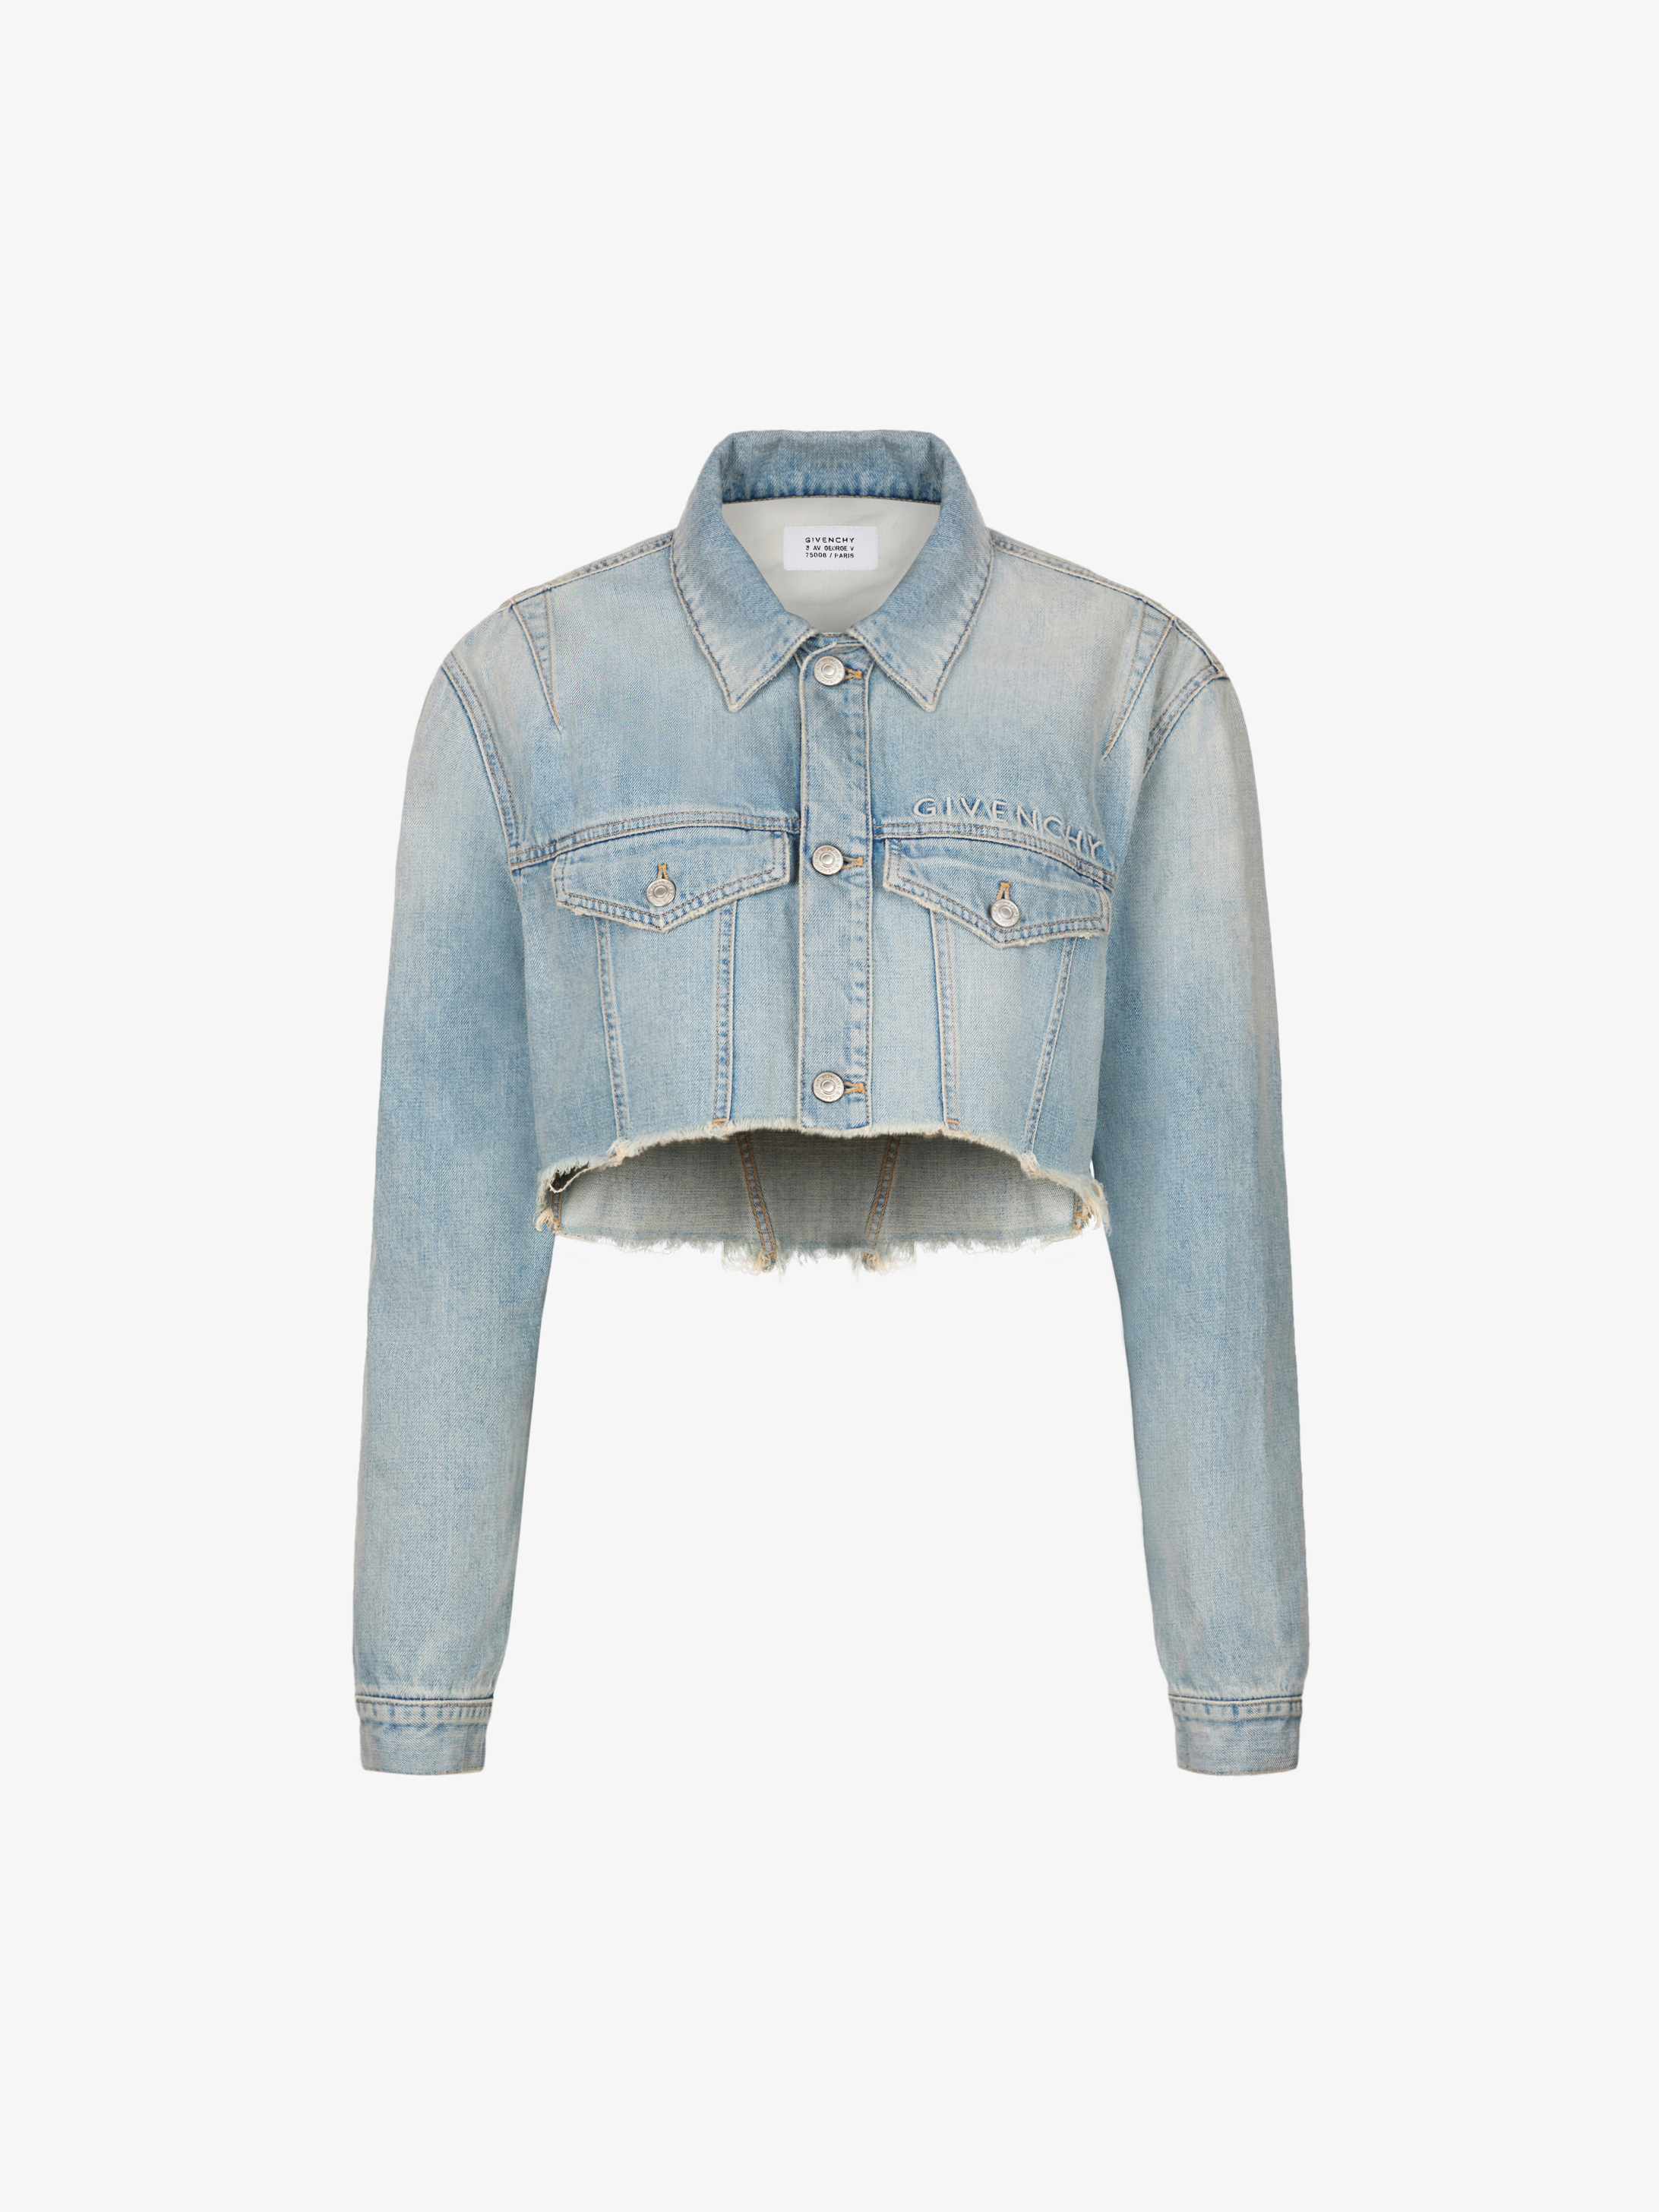 GIVENCHY embroidered faded jacket in denim